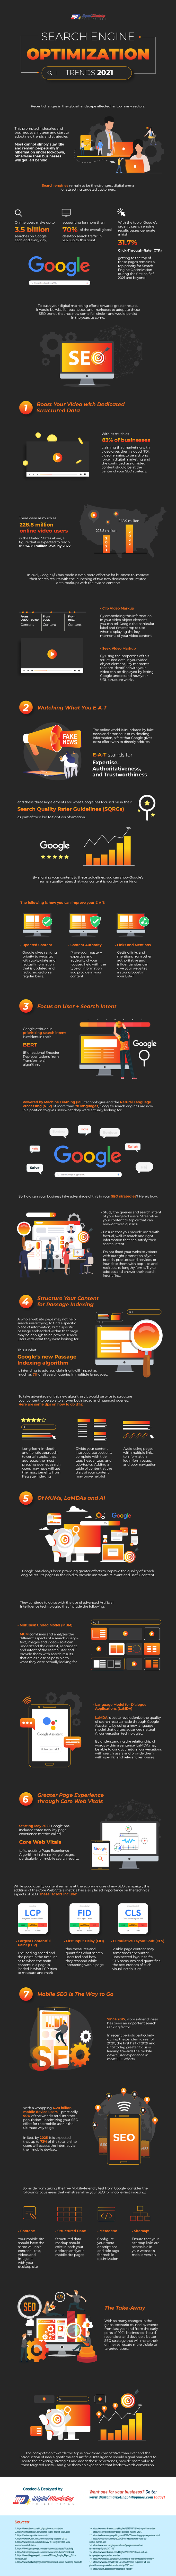 Search Engine Optimization Trends 2021 – Mid-Year Report Infographic